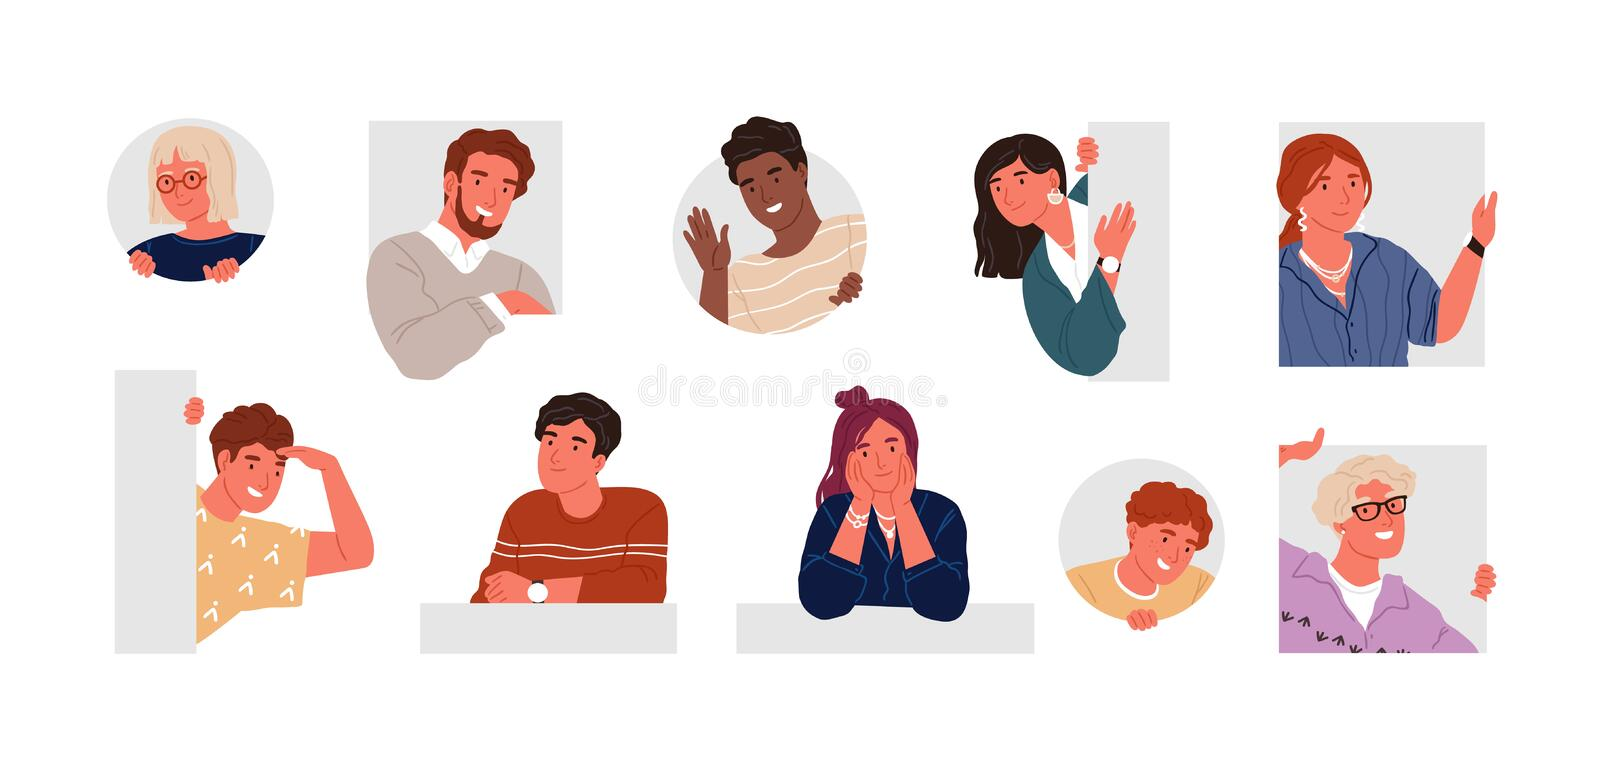 Cheerful, curious, happy people flat vector illustration set. Men and women peeping, staring, smiling cartoon characters vector illustration